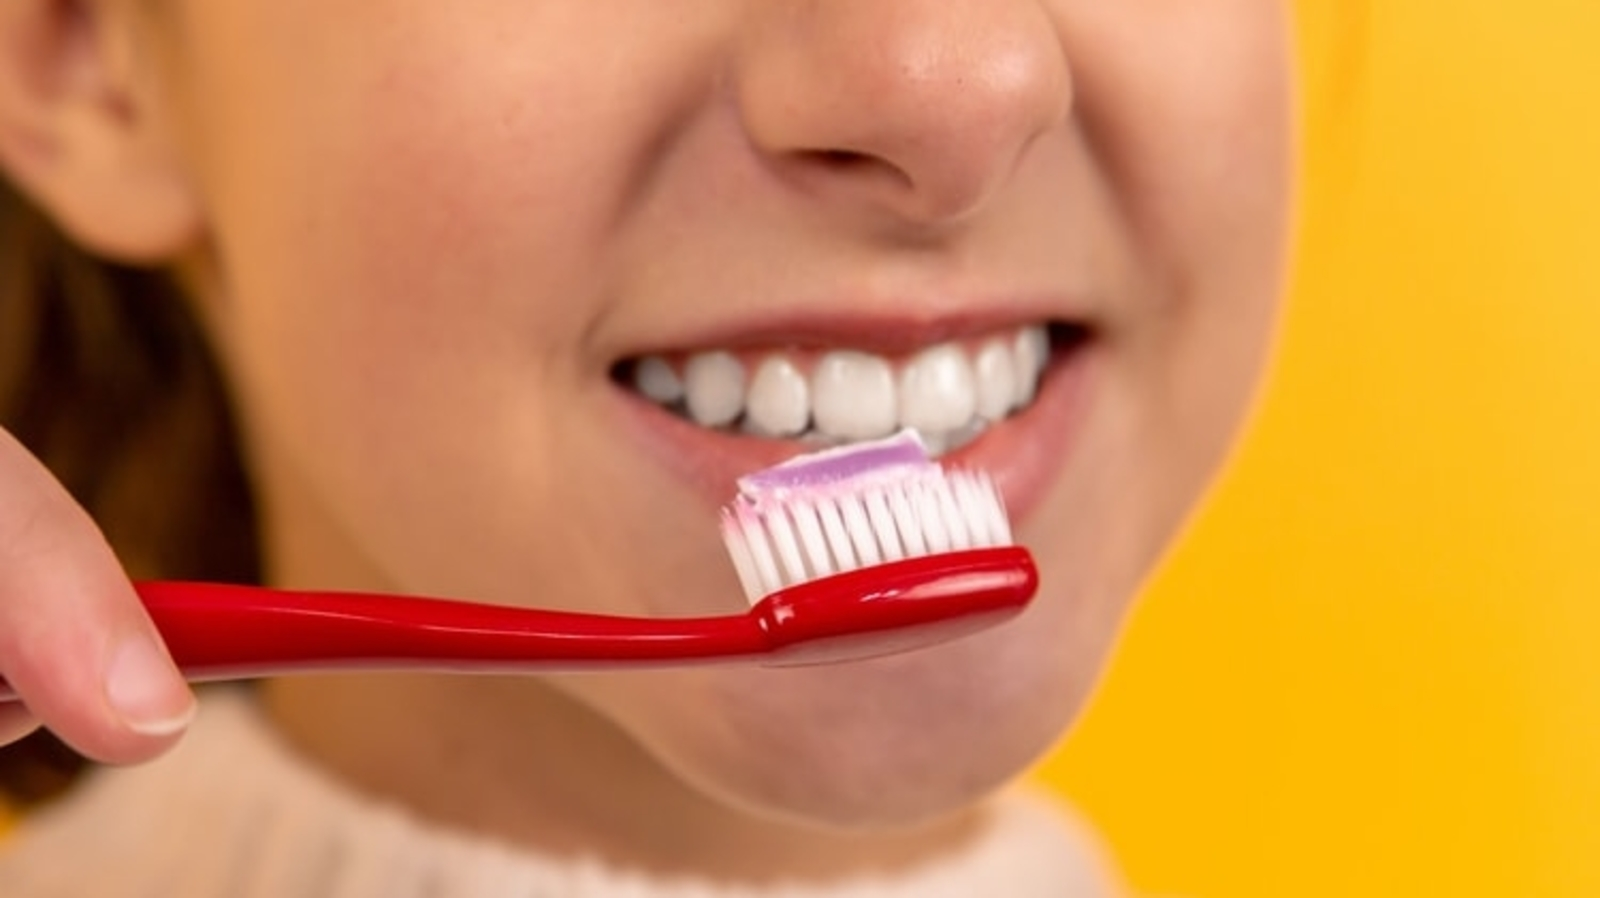 Here's how simple oral hygiene can help reduce Covid-19 weight